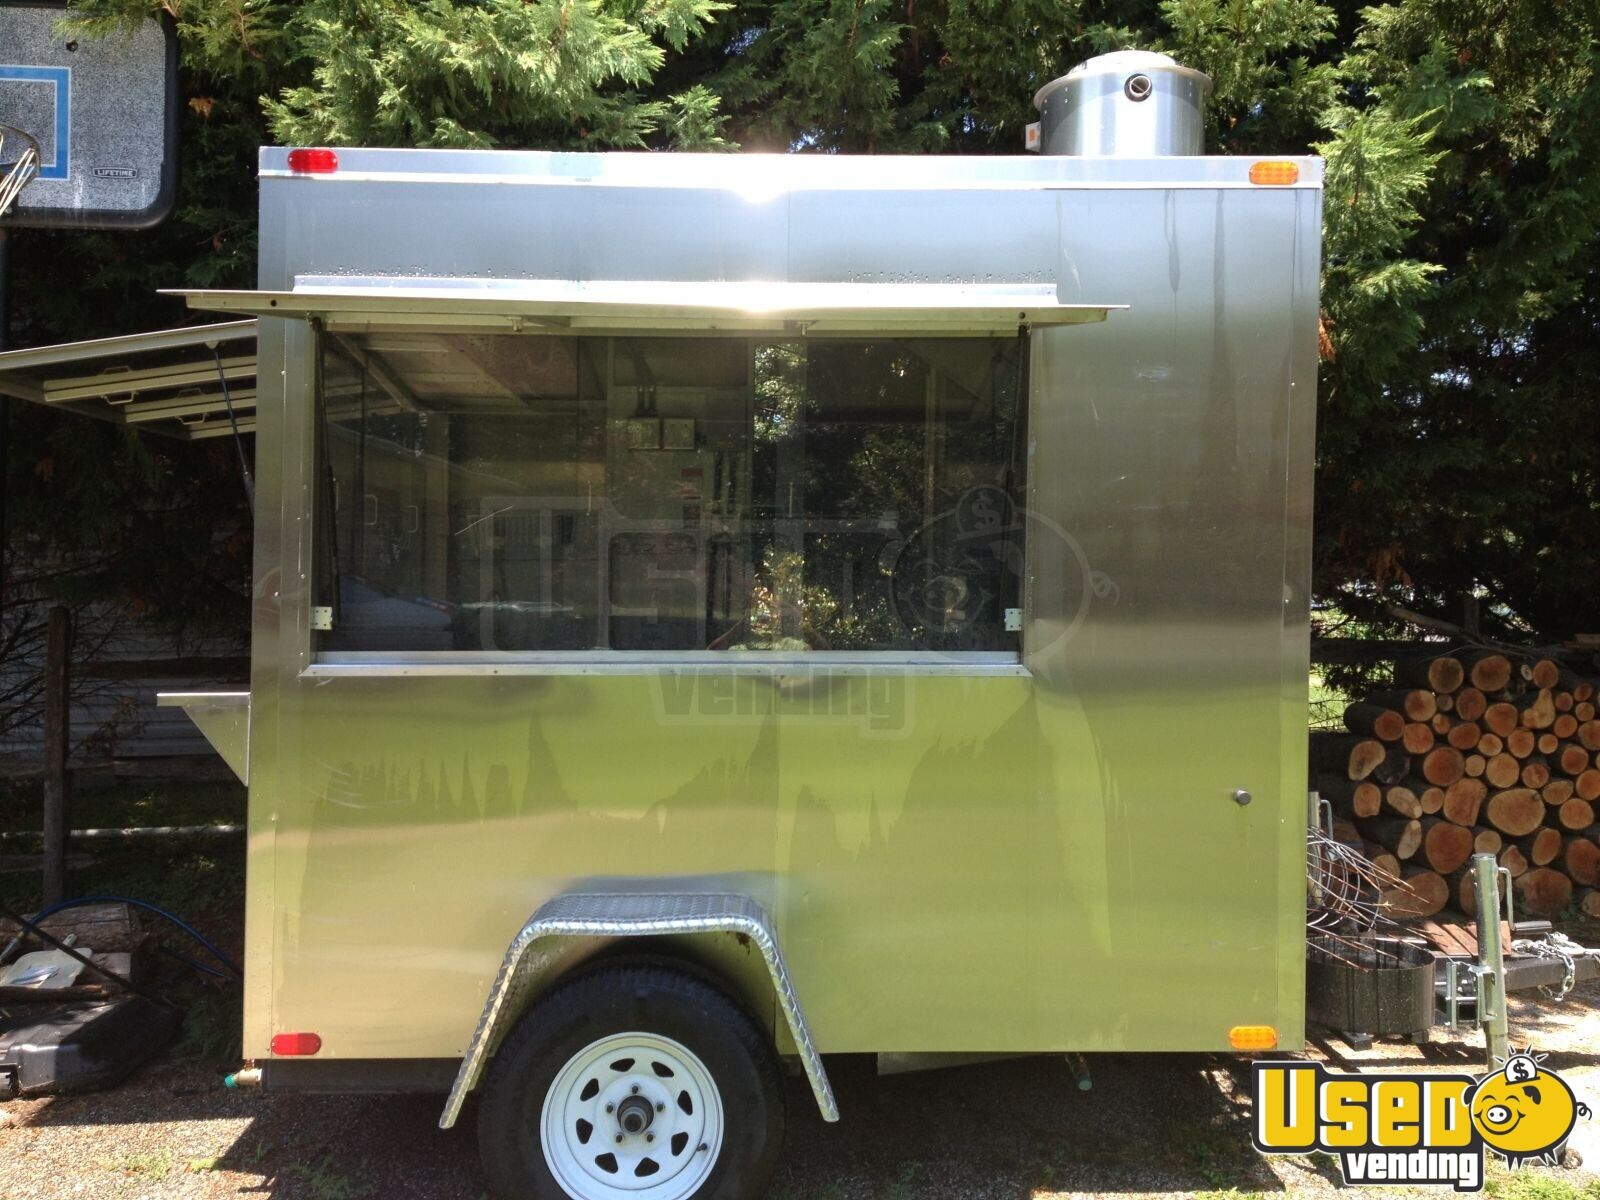 Columbia 6 X 8 Hot Dog Trailer Concession Trailer For